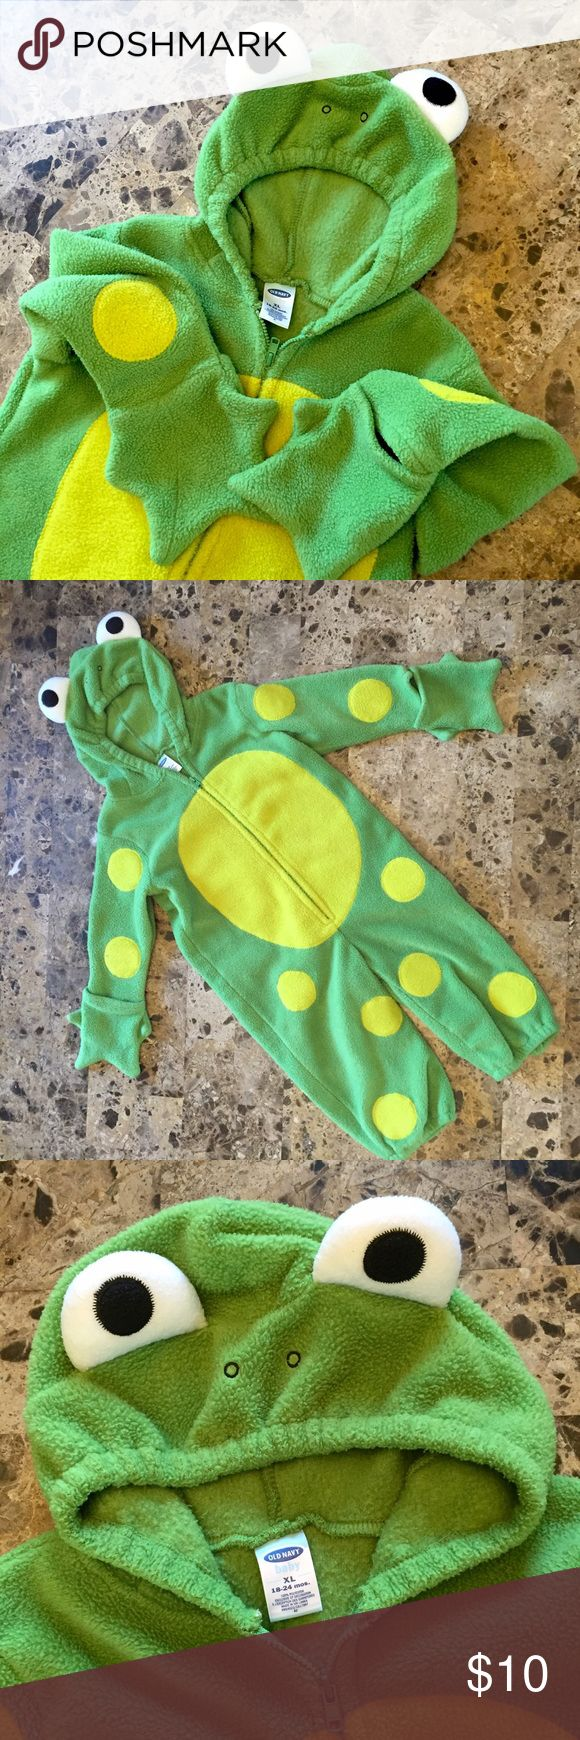 Baby Frog Halloween costume  Get your little ready for Halloween with this warm and cozy little frog costume from Old Navy!!  Zip up with hood.  Holes for feet.  Even cute little webbed gloves for hands!!  18-24m Worn once last Halloween. Old Navy Costumes Halloween